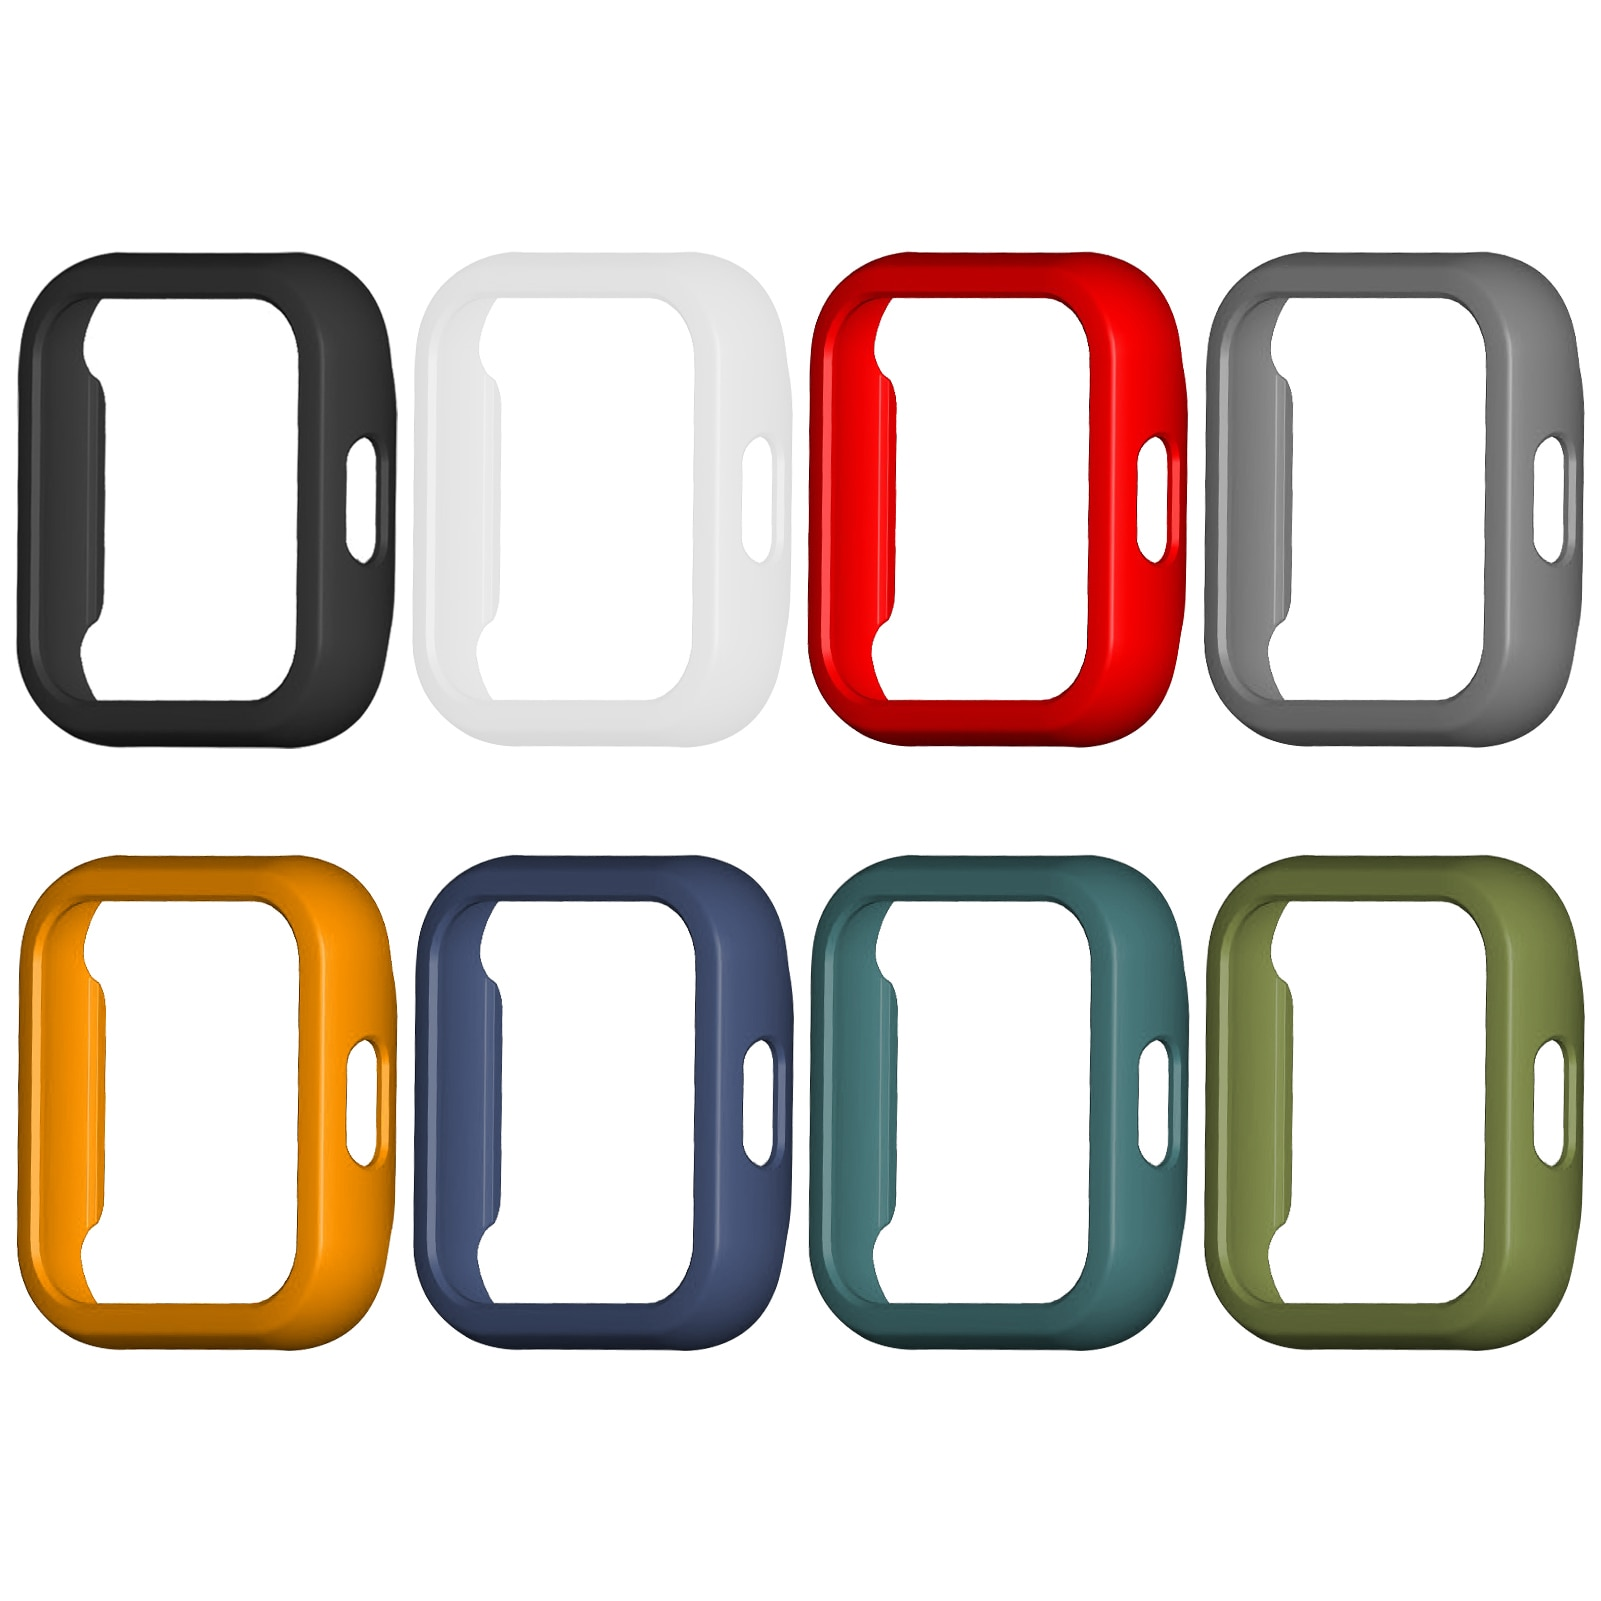 Protective Case For Smart Watch Hard PC Case Slim Skin Cover For MI Watch Lite For Realme Watch Smart Wearable Accessories Hot